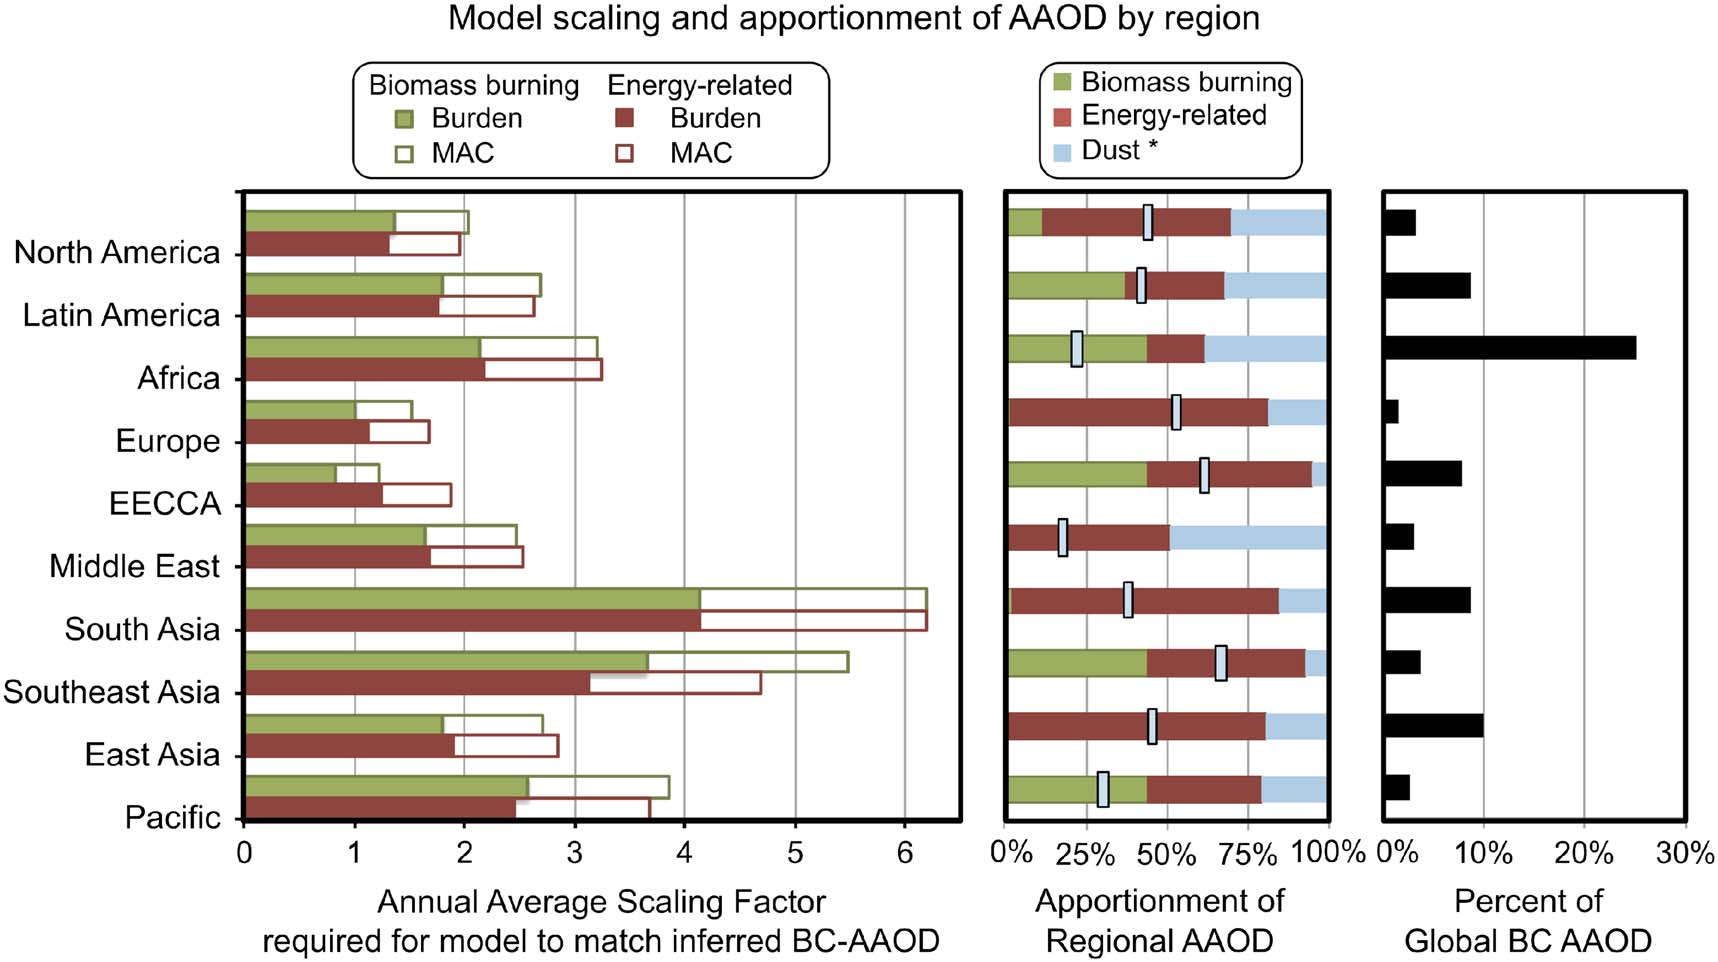 four different subsets of stations were used for the scaling of all-source BC AAOD, global averages ranged from 0.0057 to 0.0071. The analysis presented here includes this uncertainty.